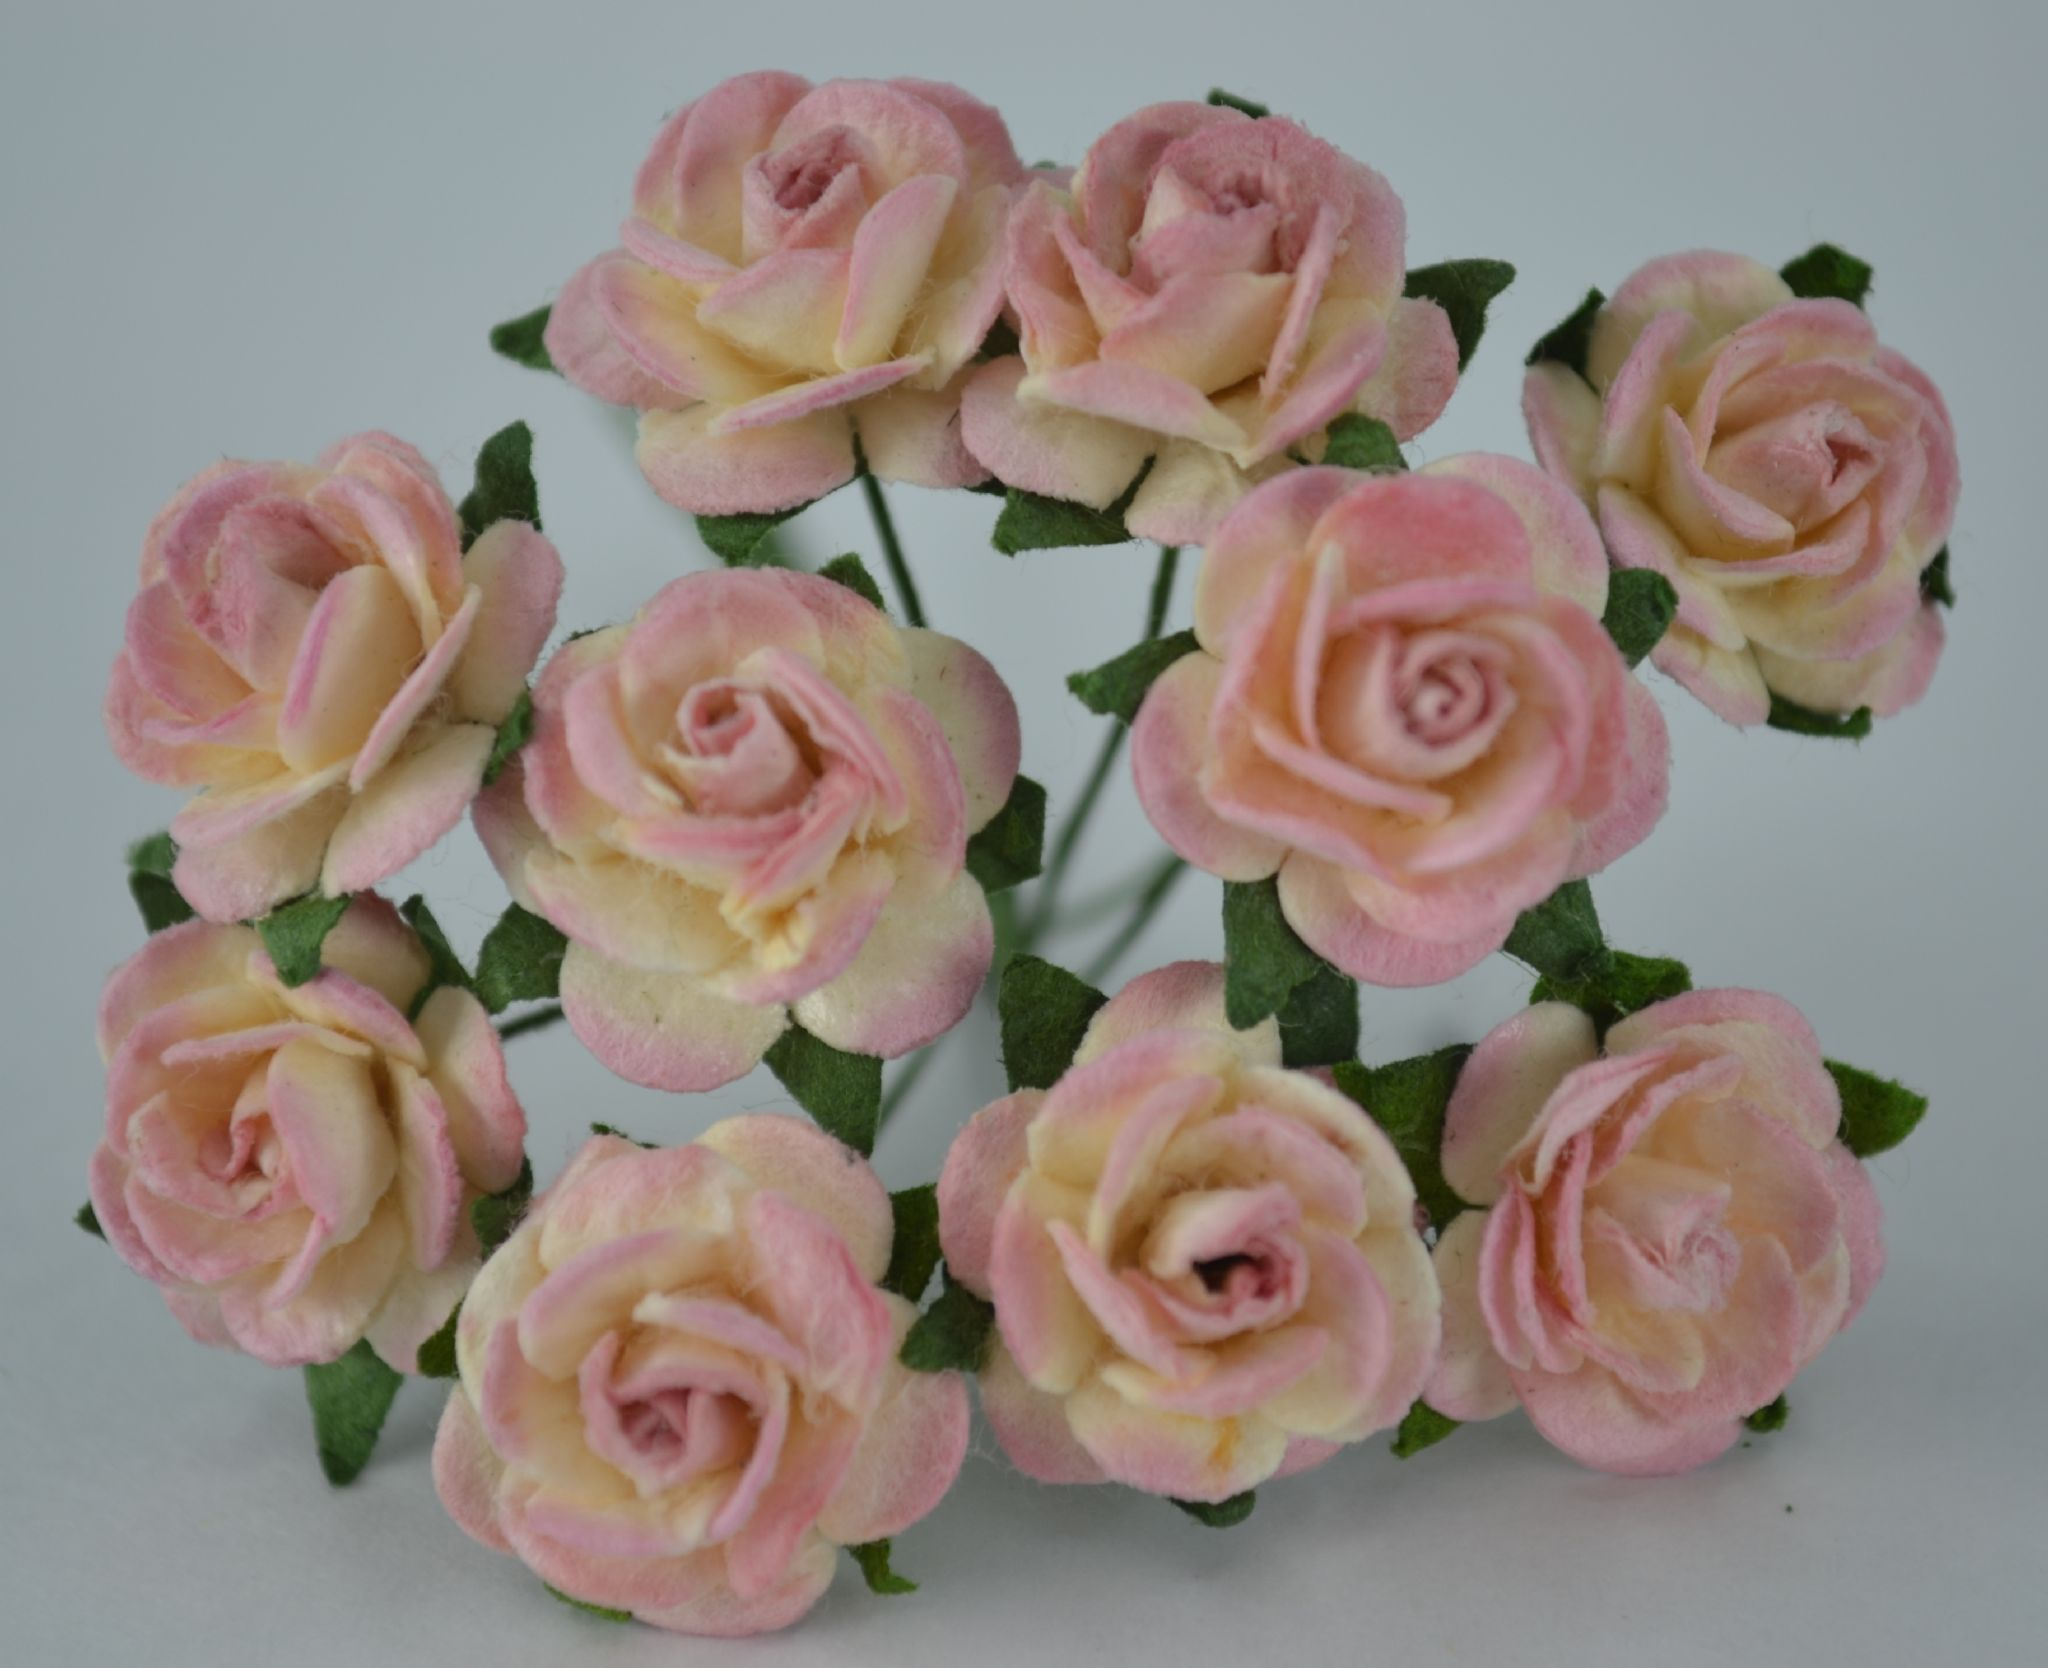 15cm Dark Dusky Pink Mulberry Paper Roses